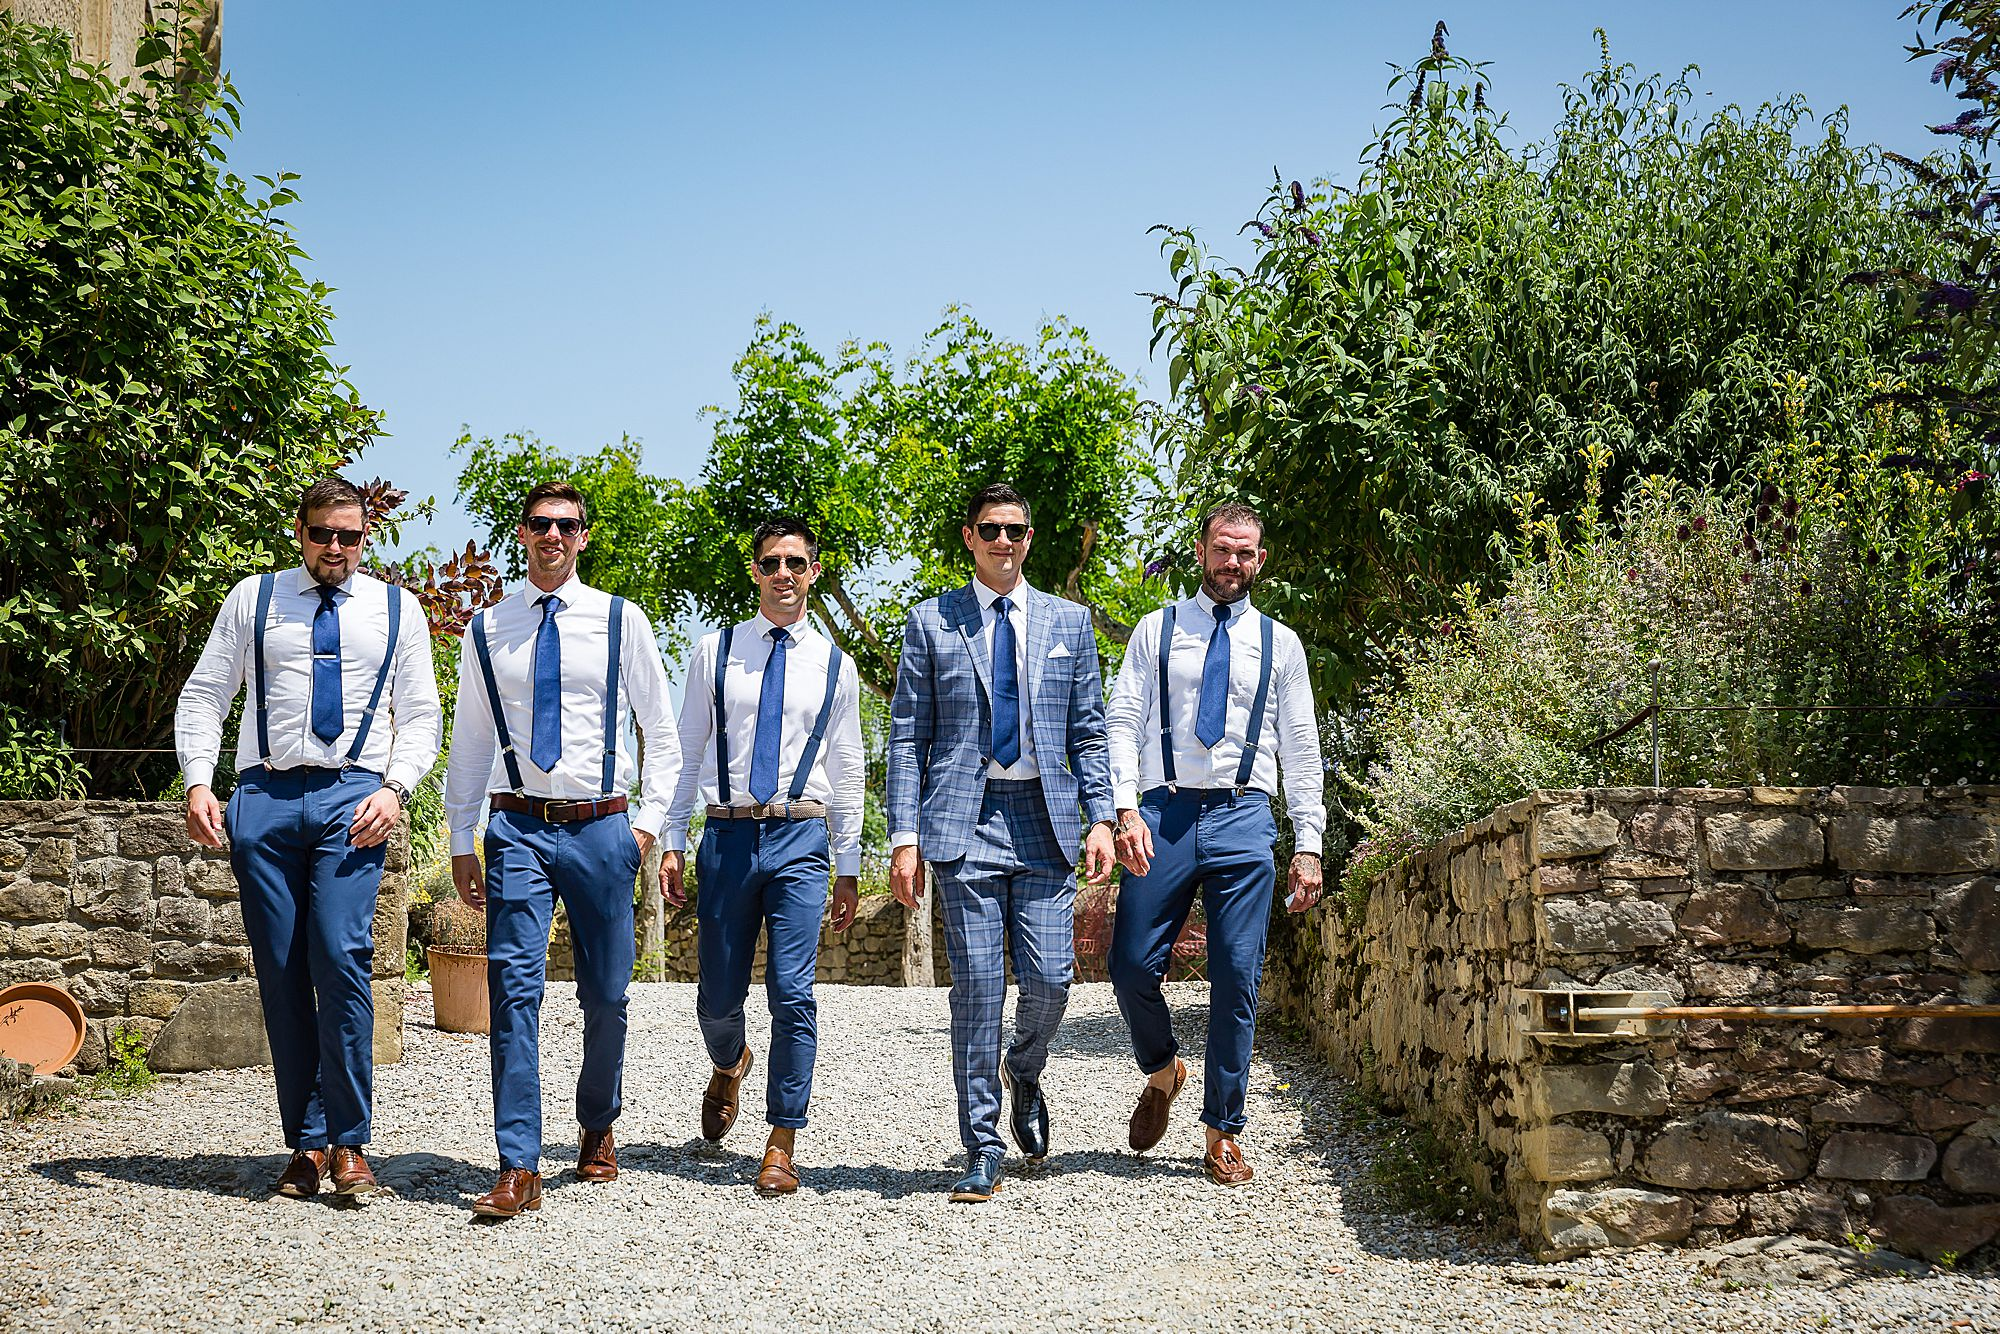 boys walking at Chateau de Queille Wedding